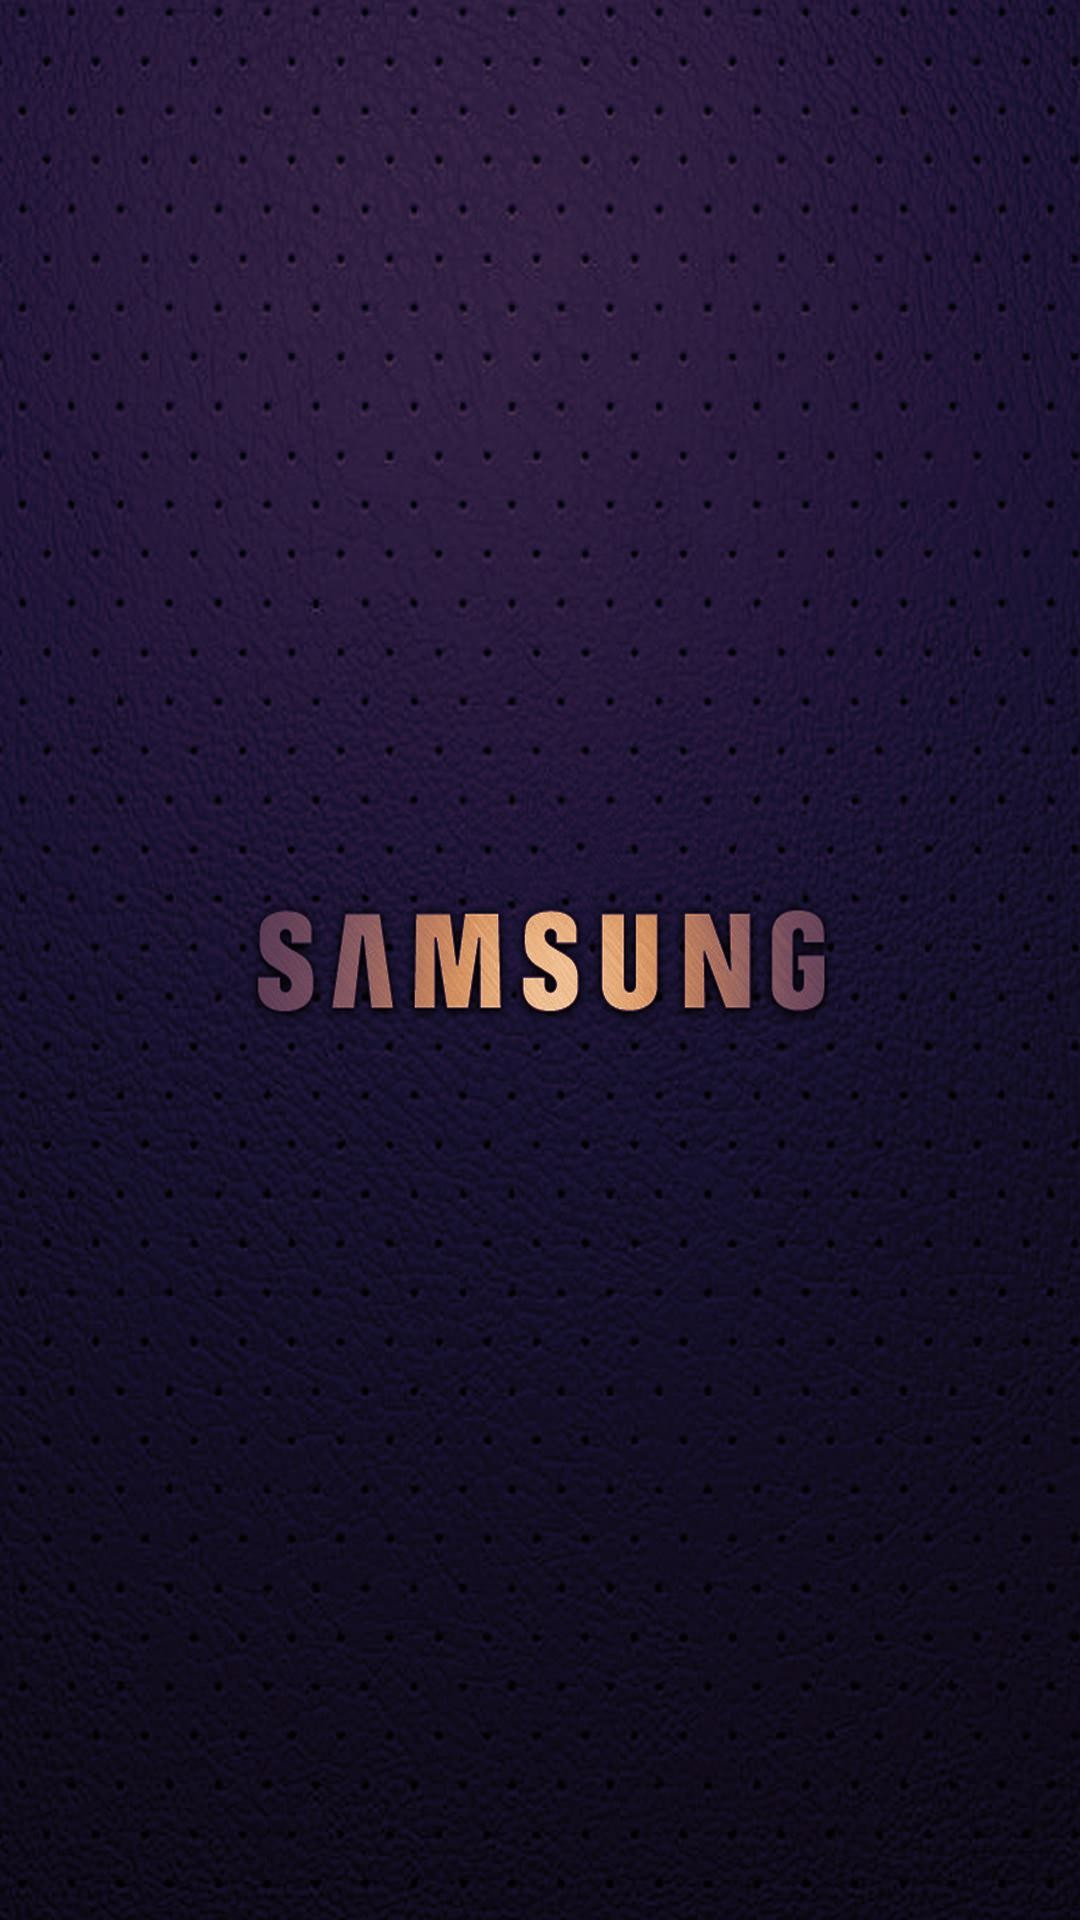 Samsung Phone Wallpaper 74 Images